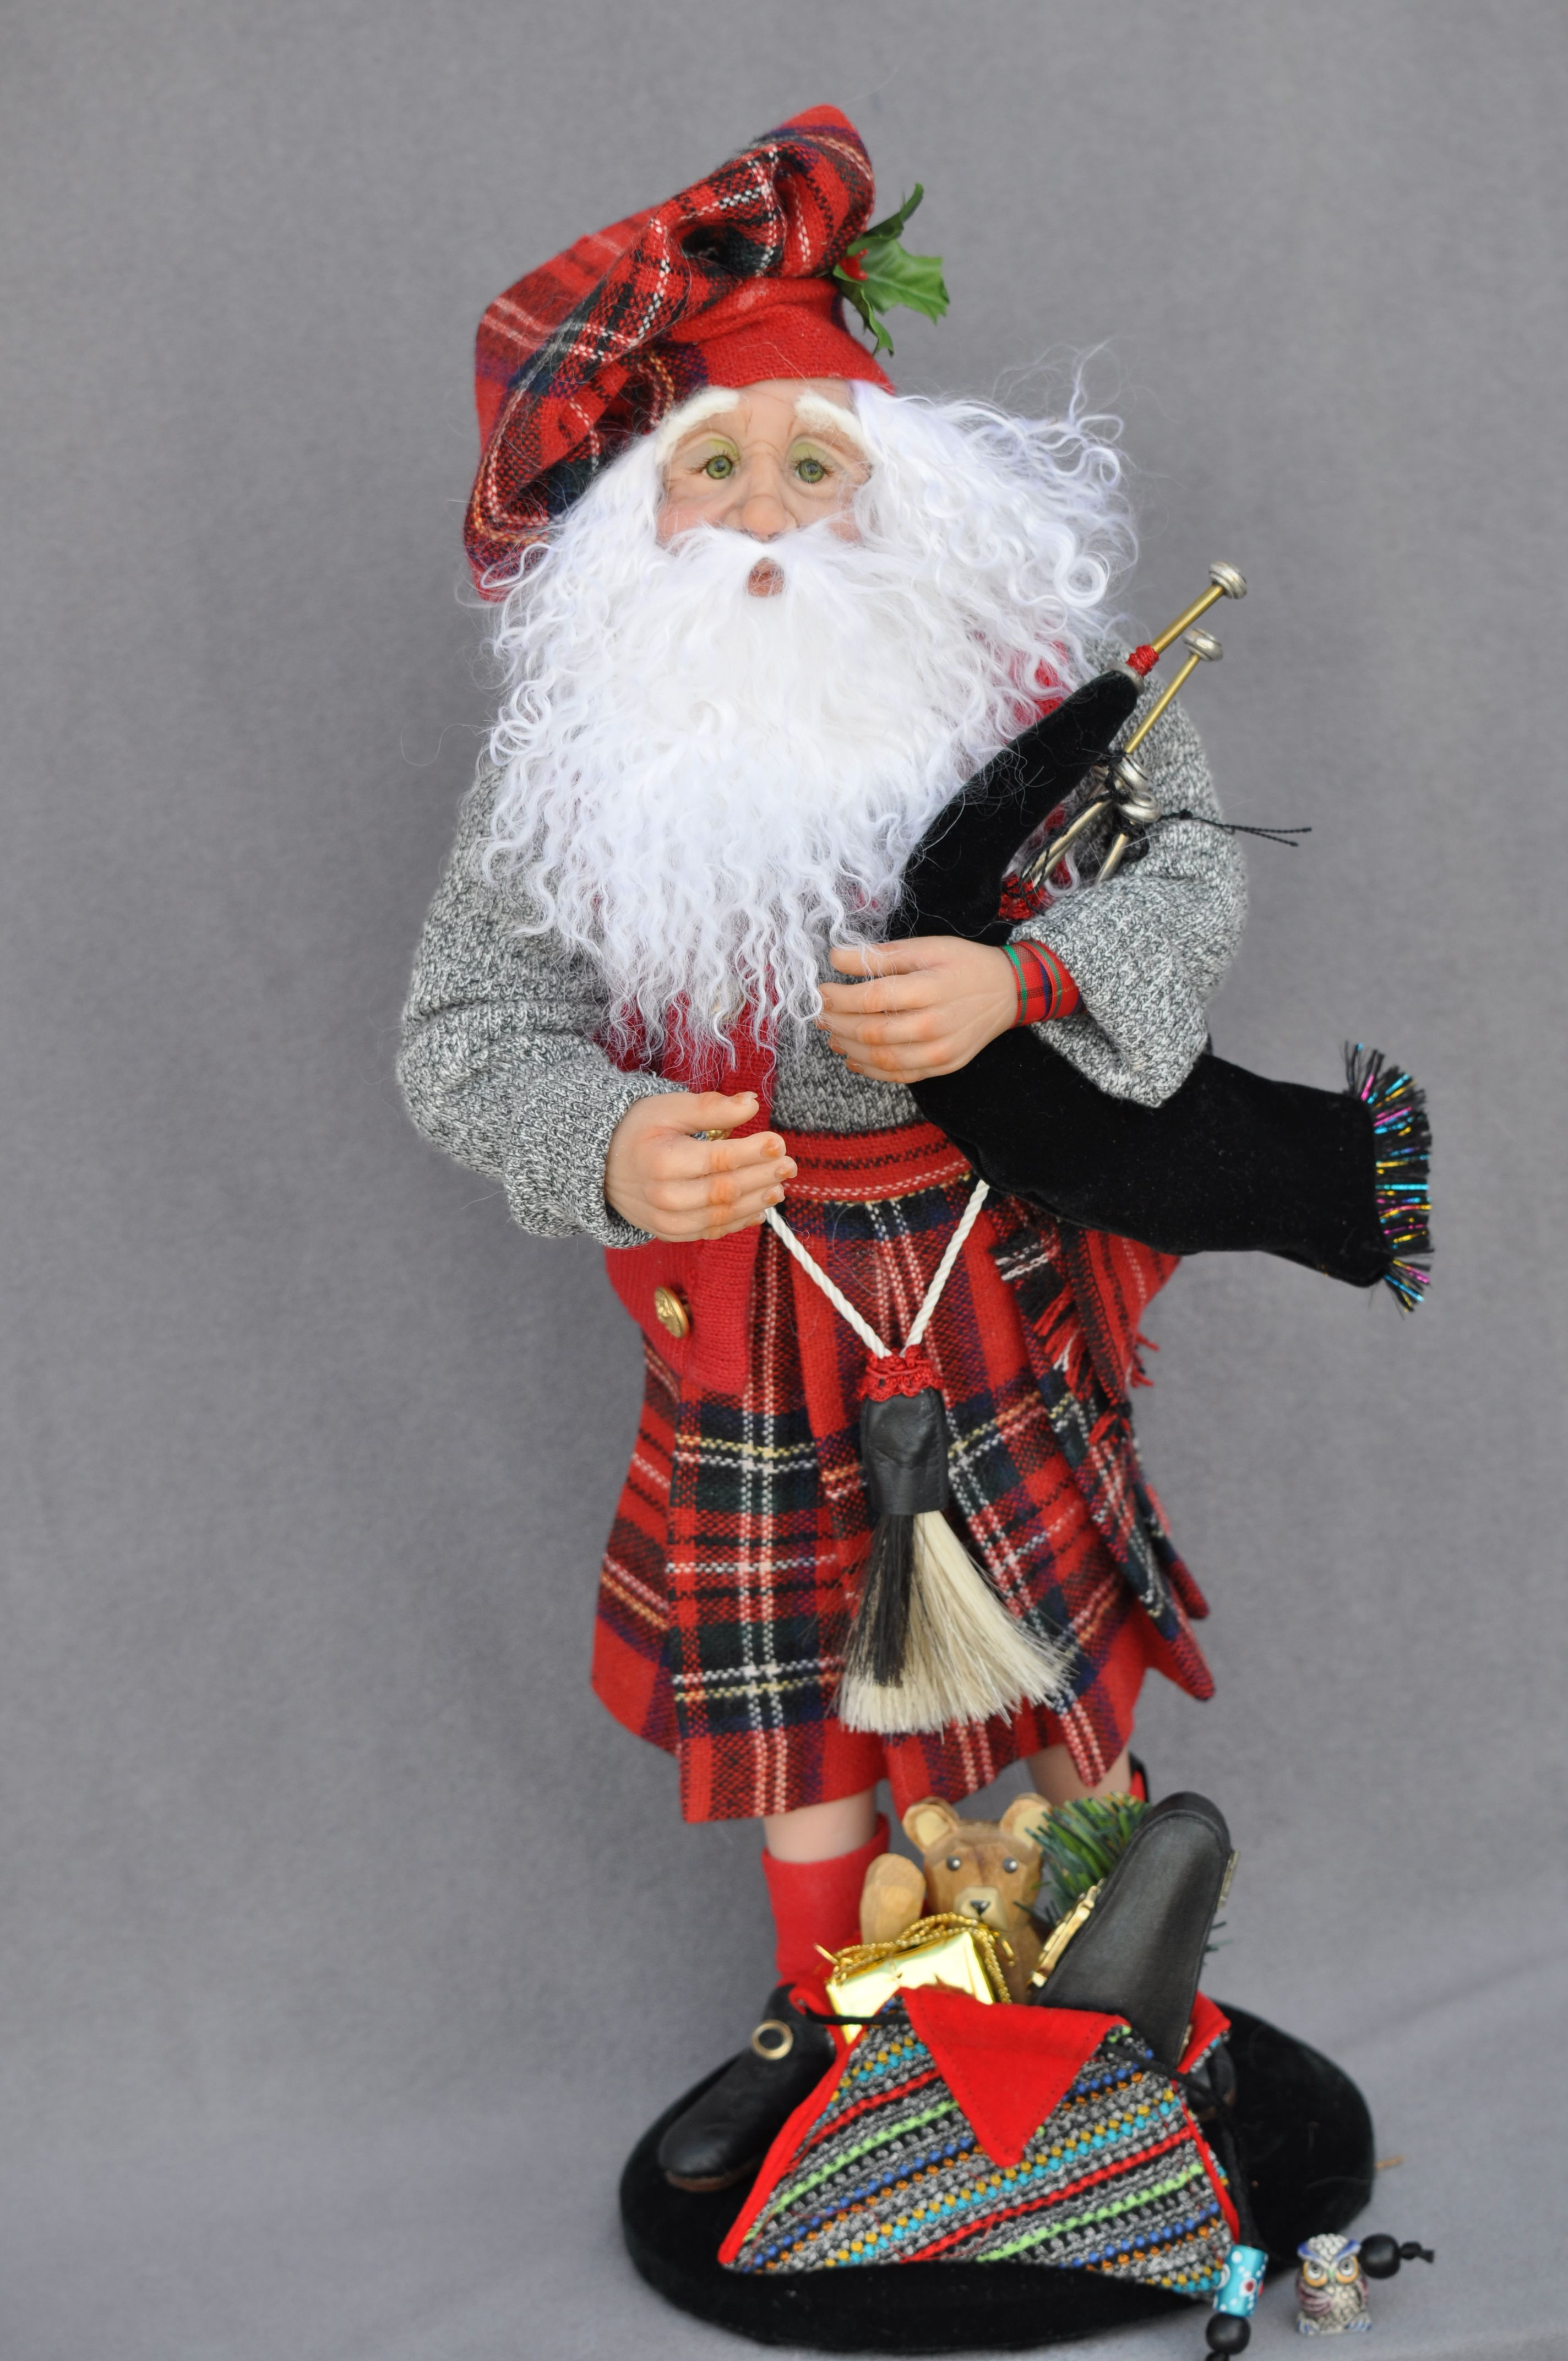 mcnichols and his bagpipes polymer clay 16 tall with scottish